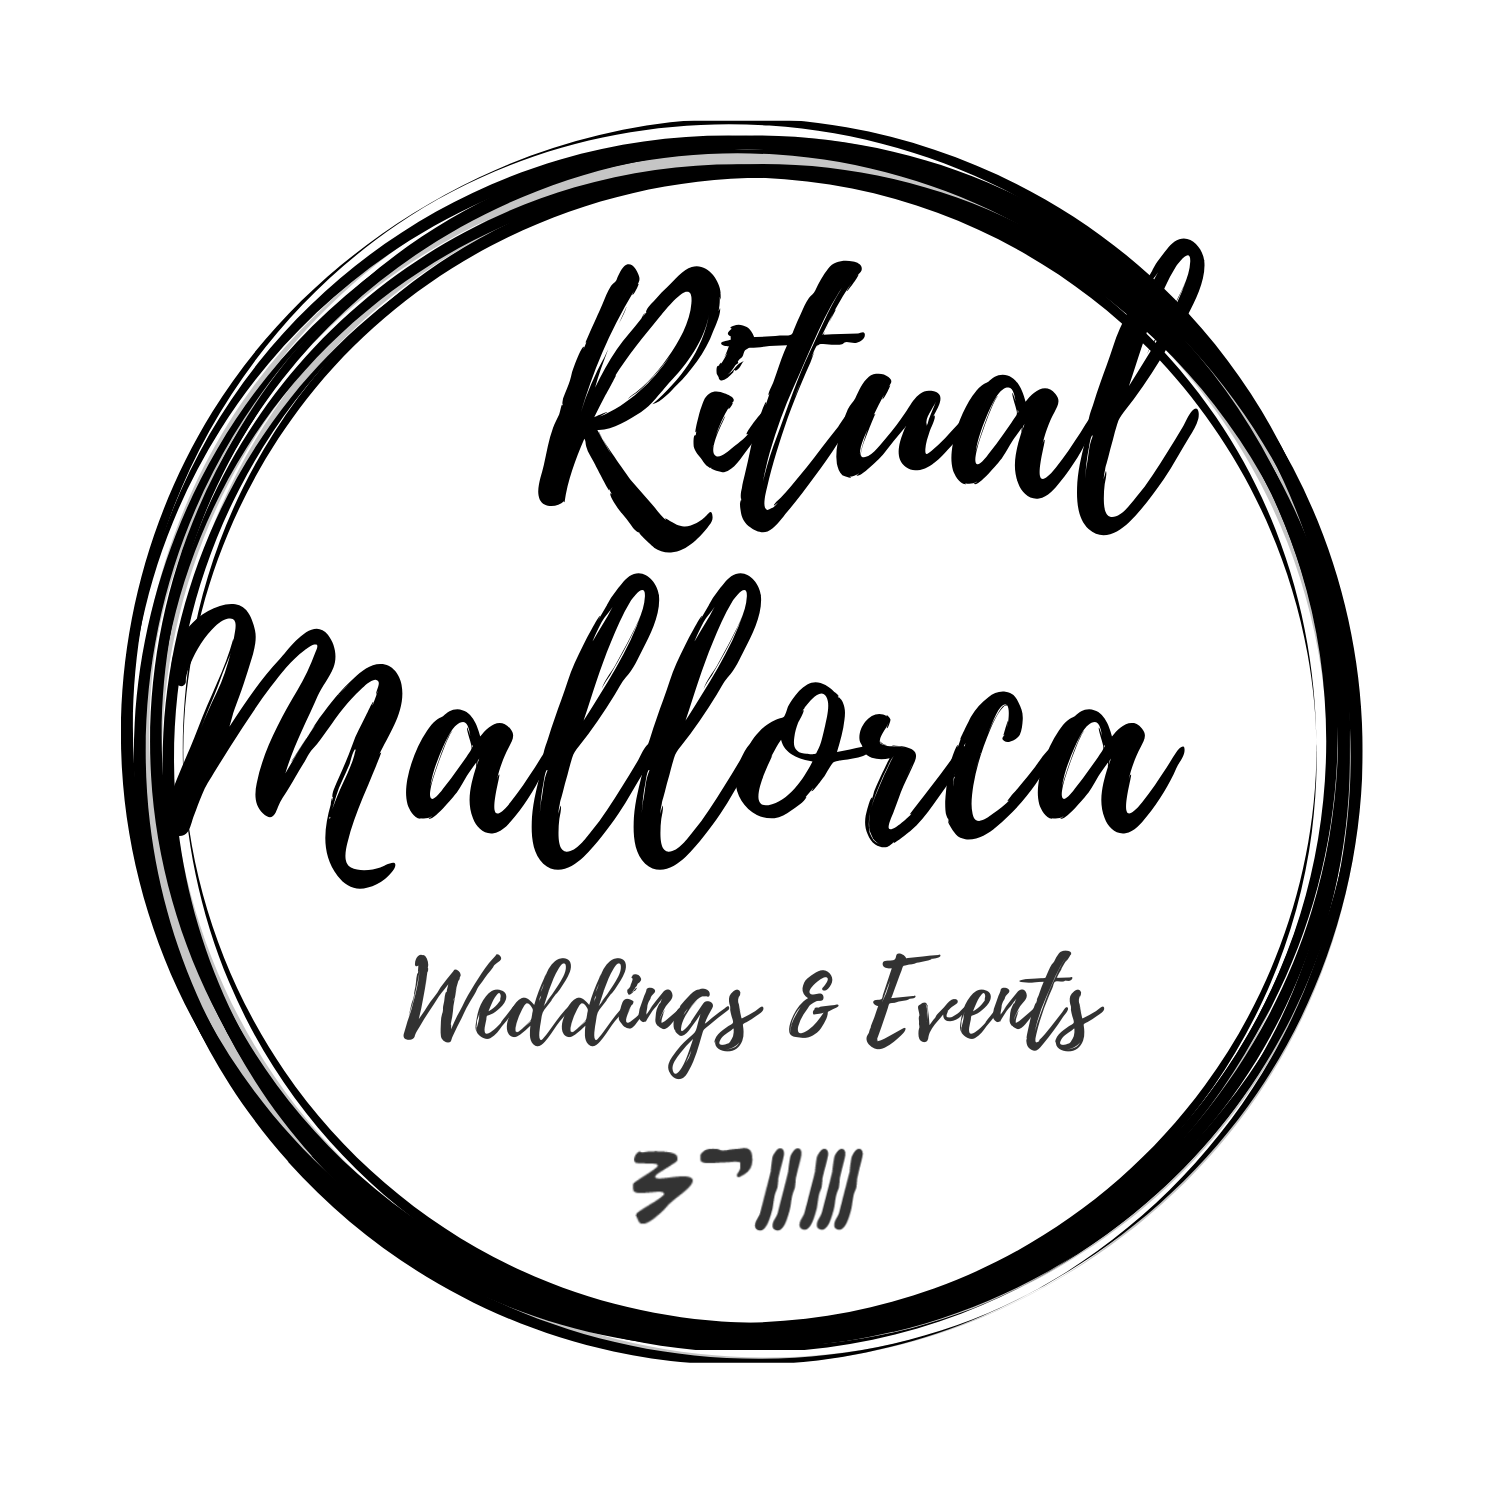 Wedding and Events Mallorca. Bodas y Eventos Mallorca.